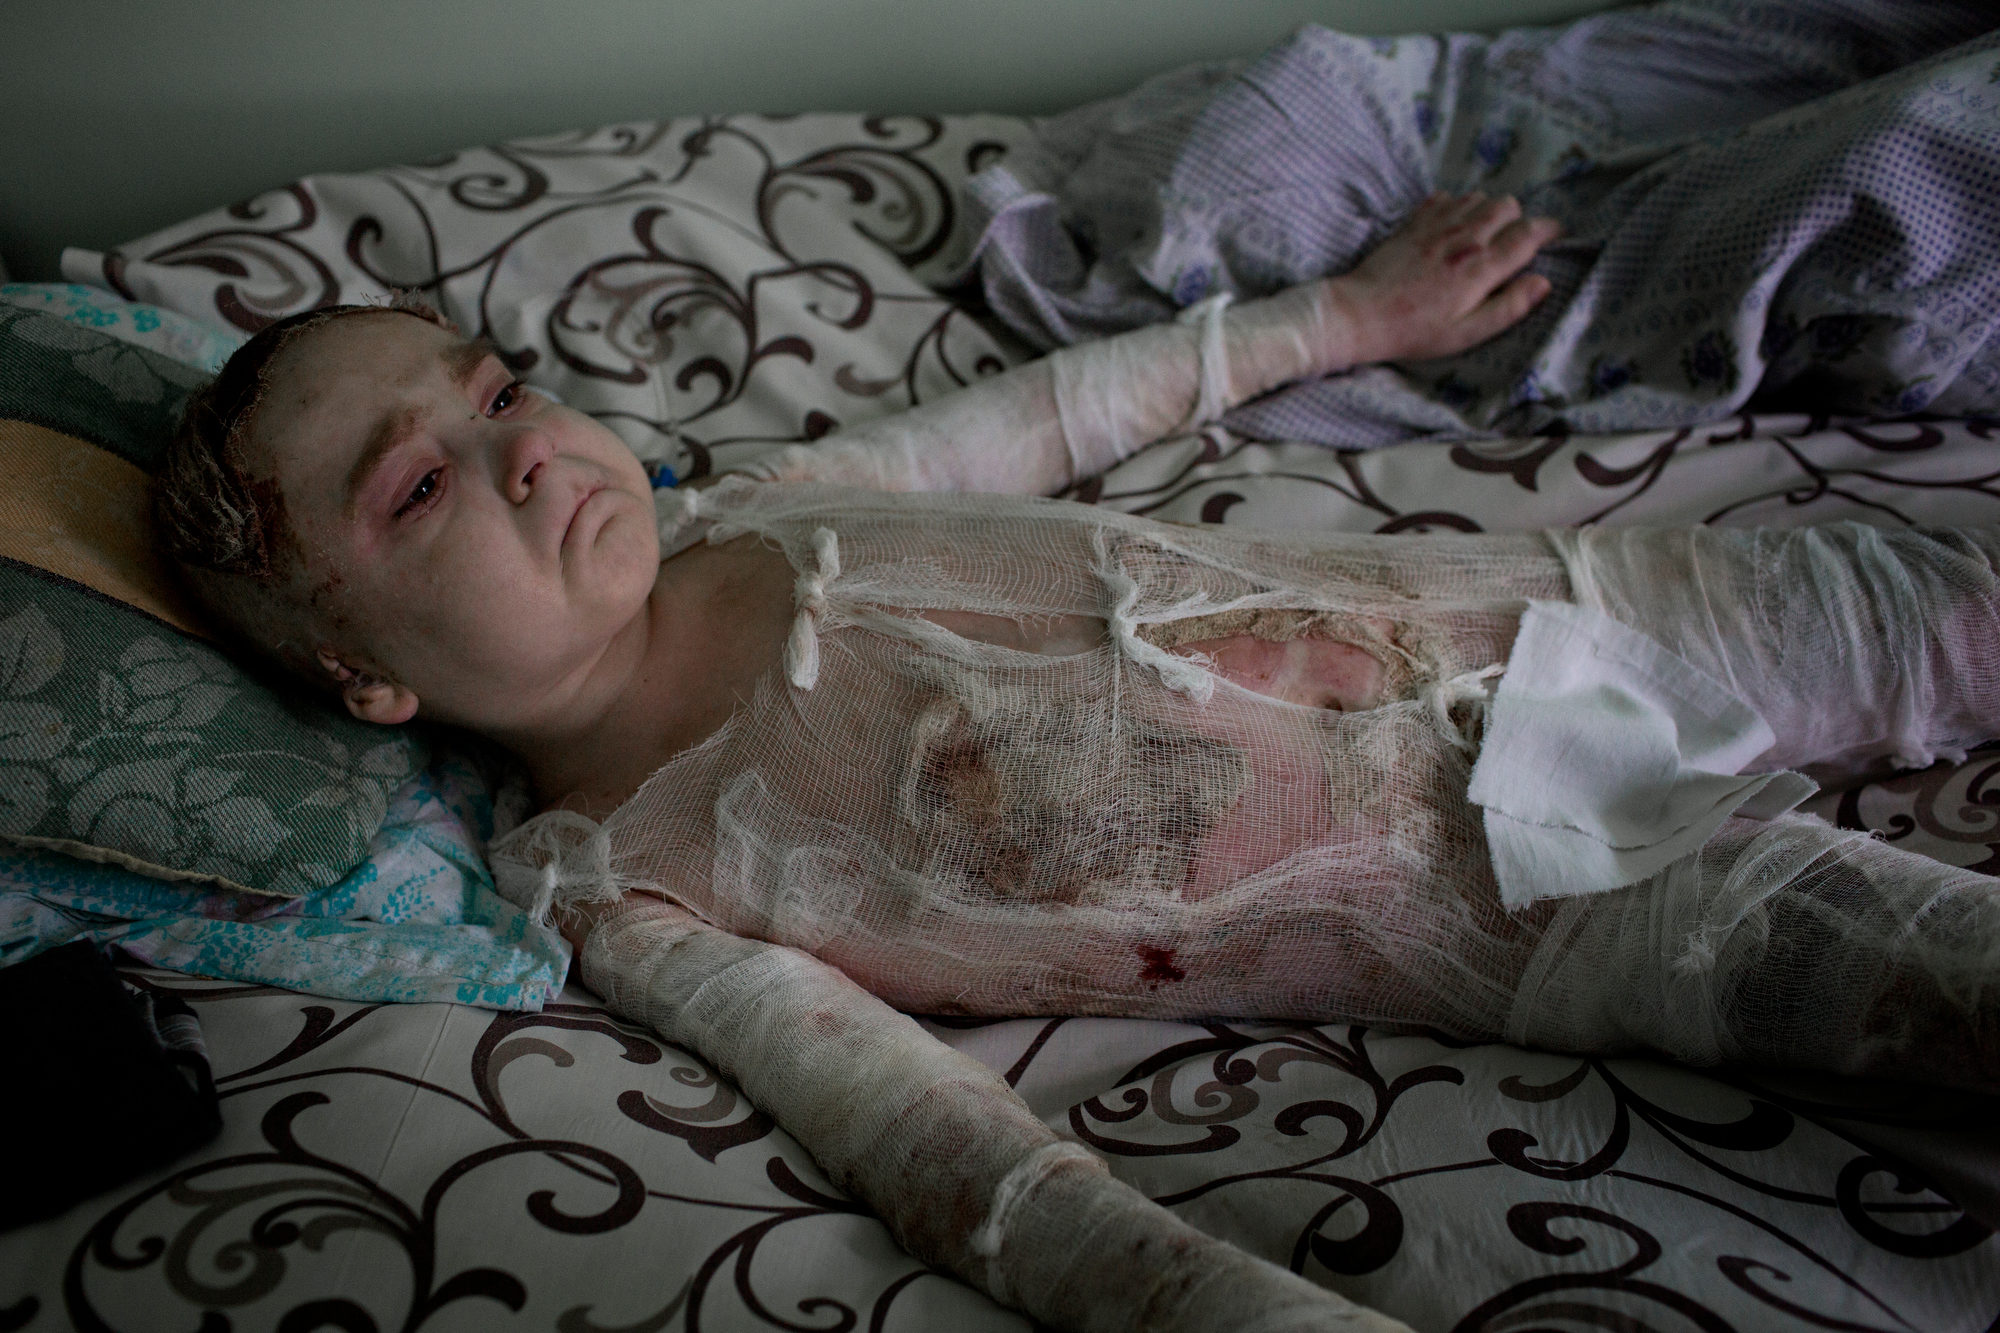 Ukraina Artem, 7 years old, lays in a hospital in Donetsk. He has third-degree burns covering 60 percent of the body a er a tank exploded near him and his cousin. His cousin Xantia, nine years old, died instantly. Artem's father watches over his son. Photo: Niclas Hammarström / Kontinent